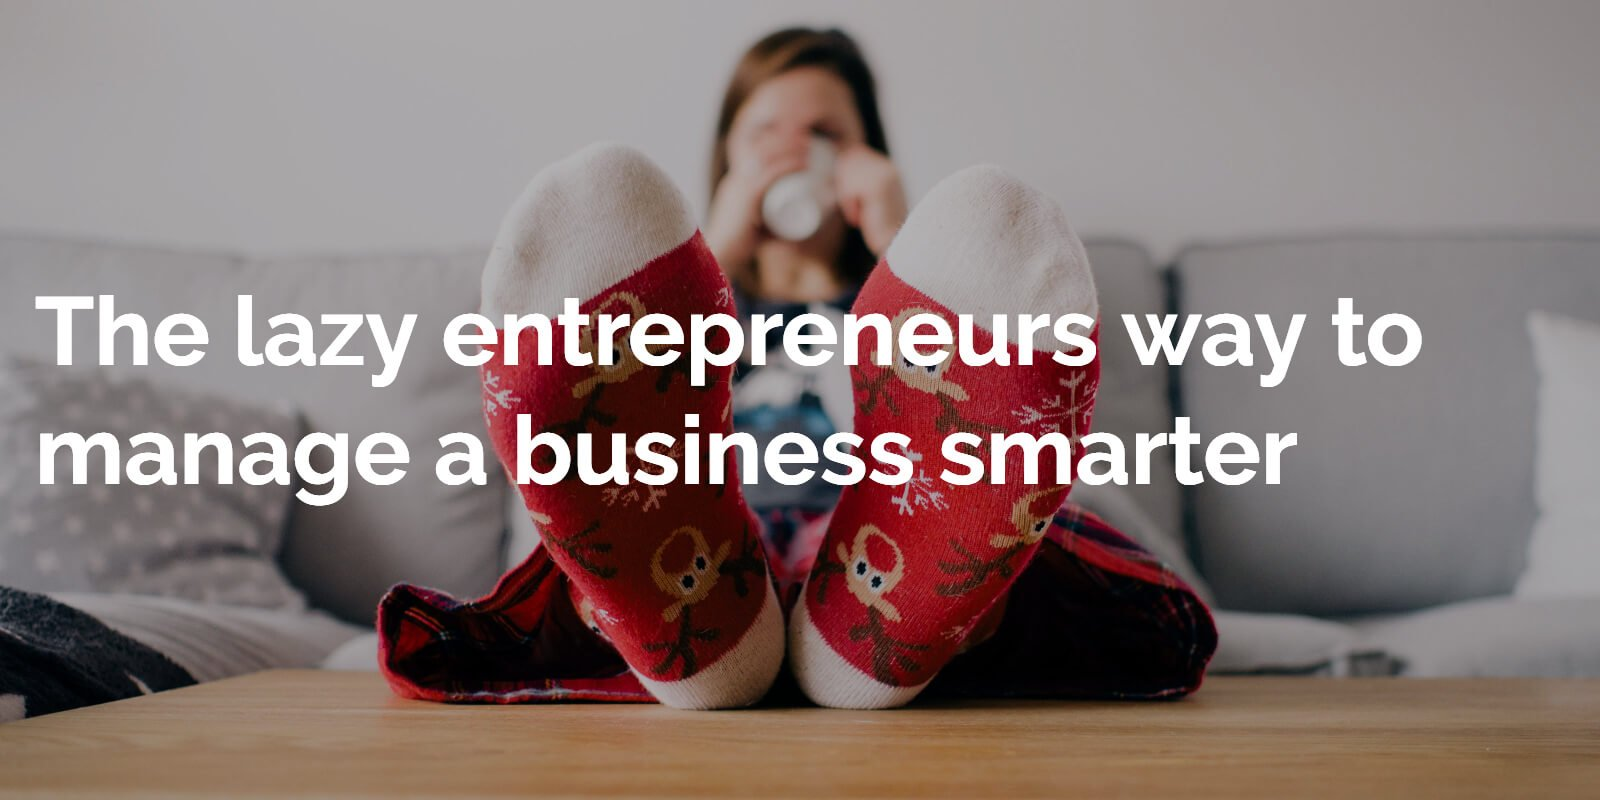 The lazy entrepreneurs way to manage a business smarter